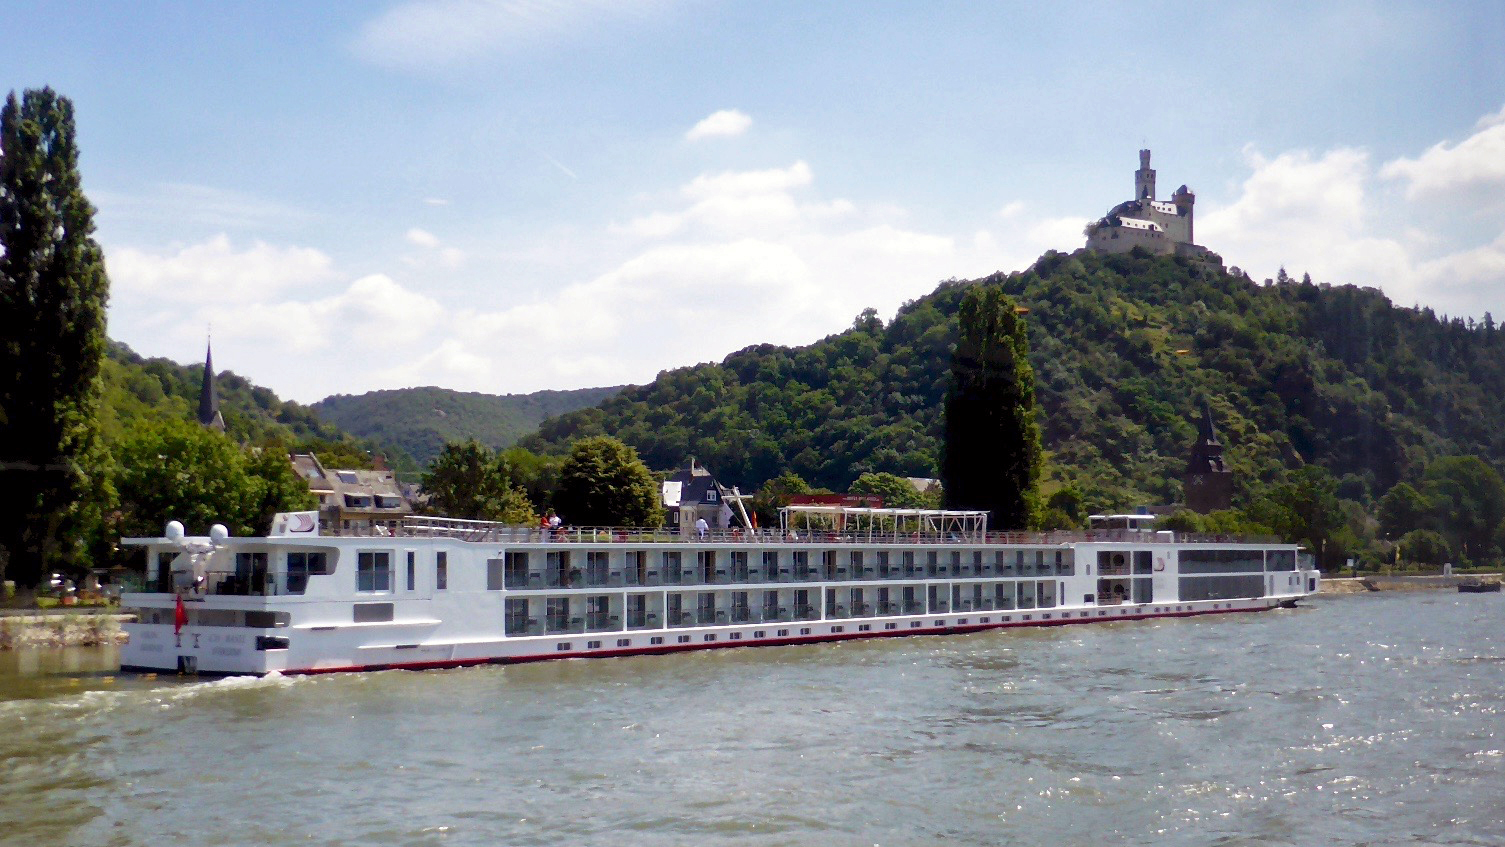 A passing Viking River Cruises' longship during our cruise past castles of the Rhine